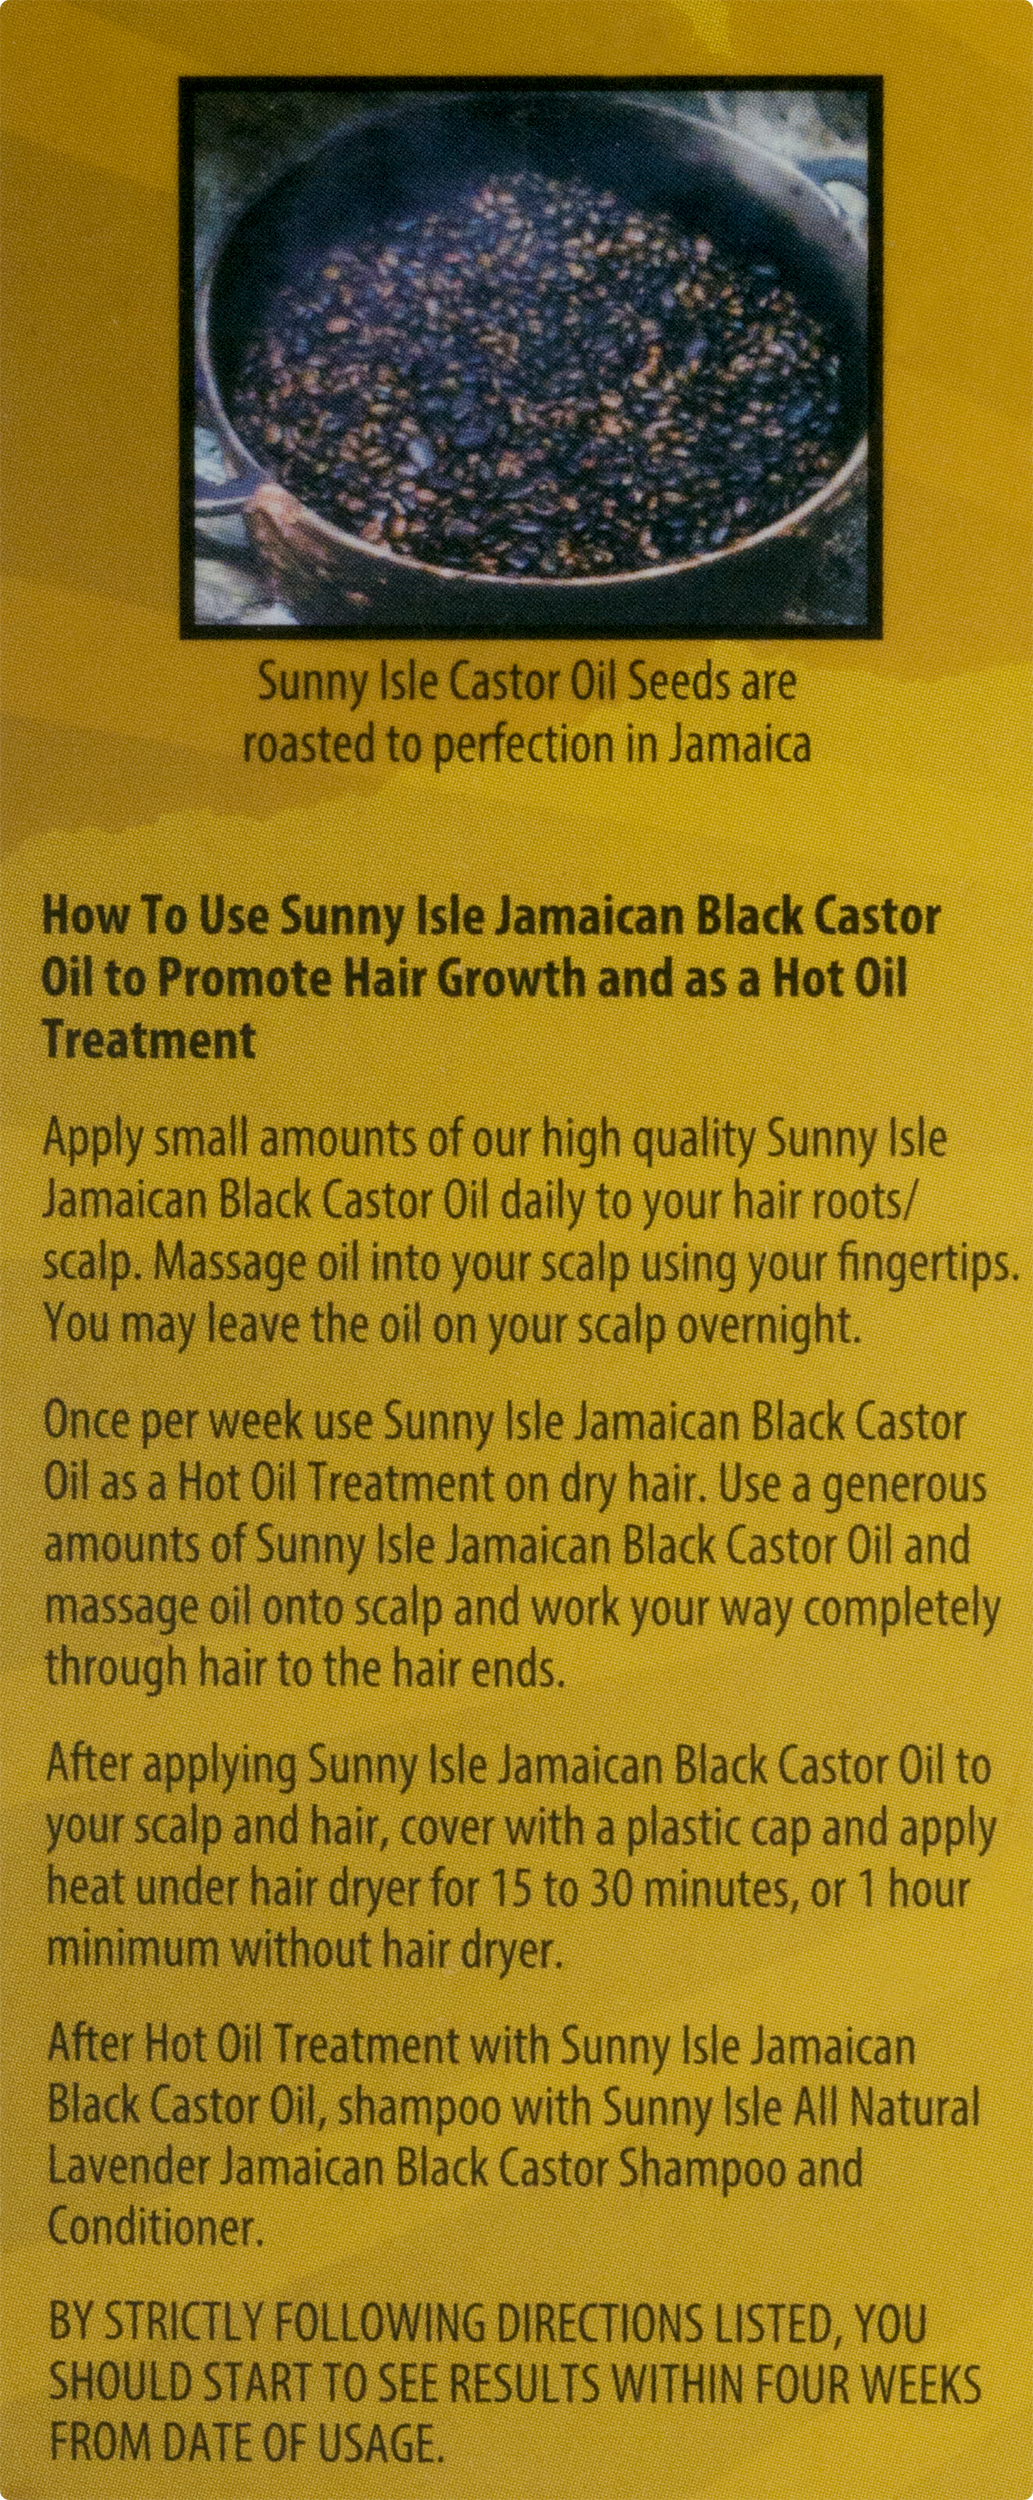 Theme of the day jamaican black castor oil for hair growth - Theme Of The Day Jamaican Black Castor Oil For Hair Growth 38